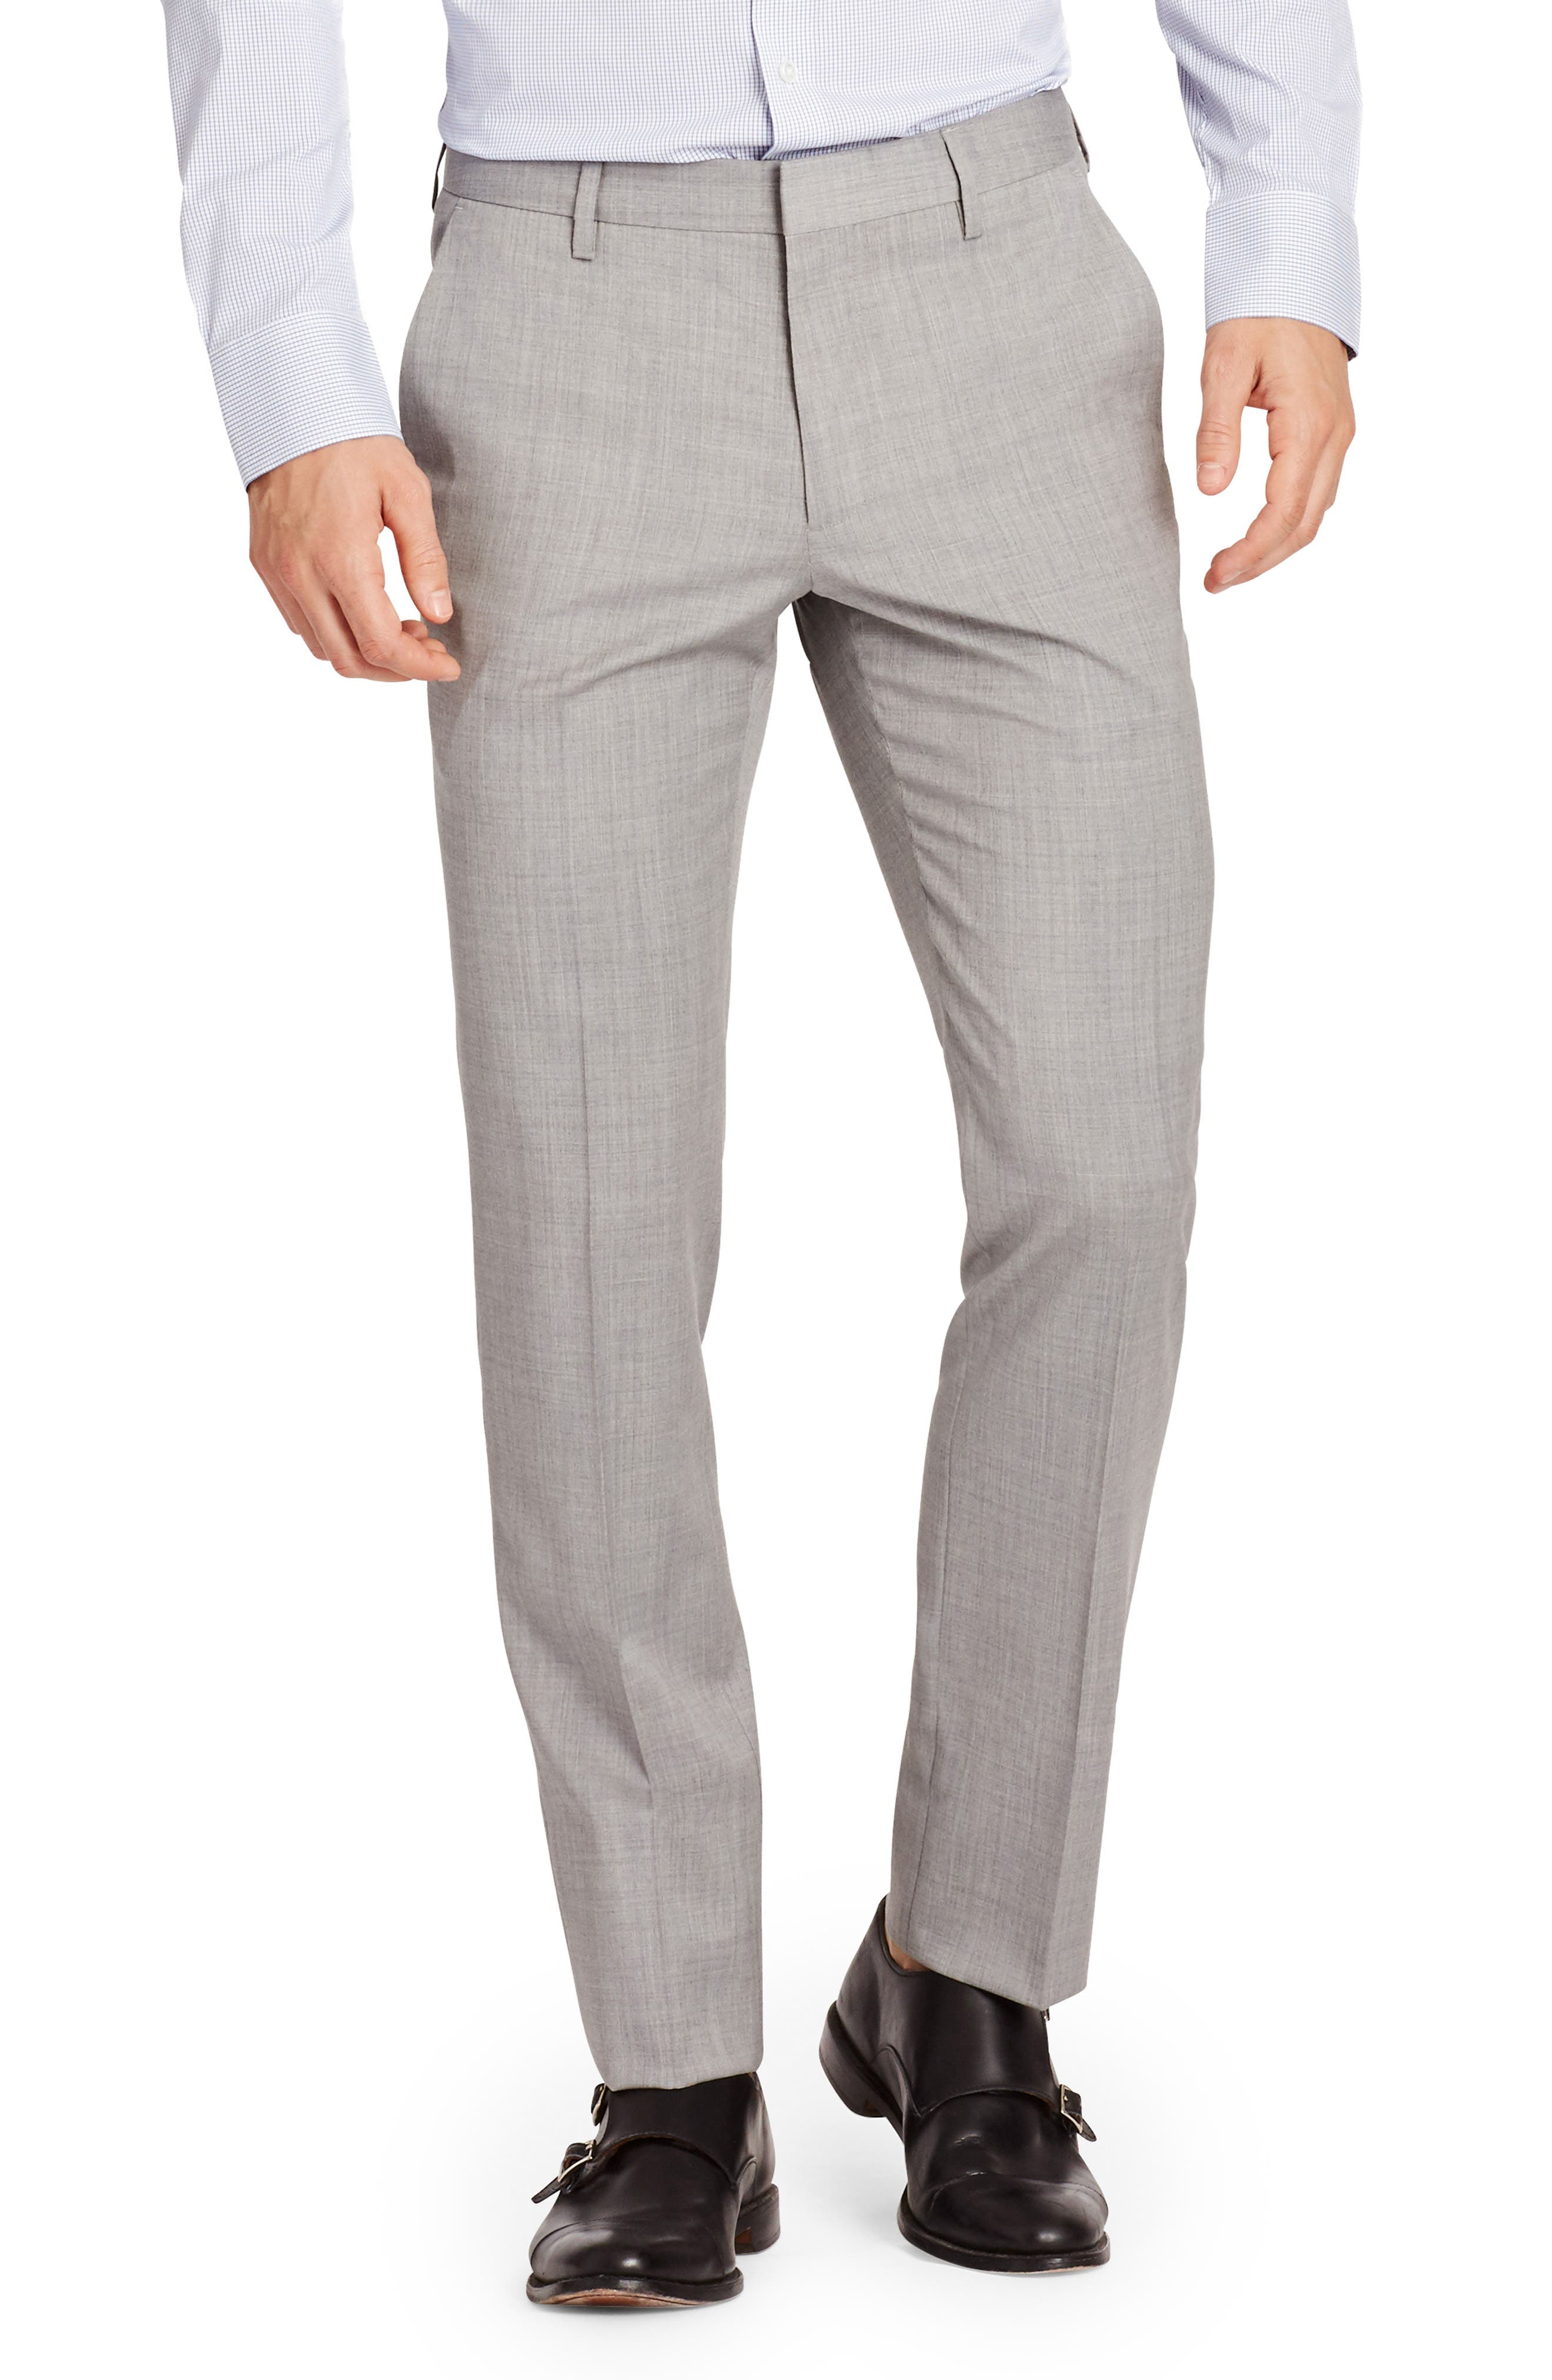 Bonobos Jetsetter Flat Front Solid Stretch Wool Trousers (Tall)